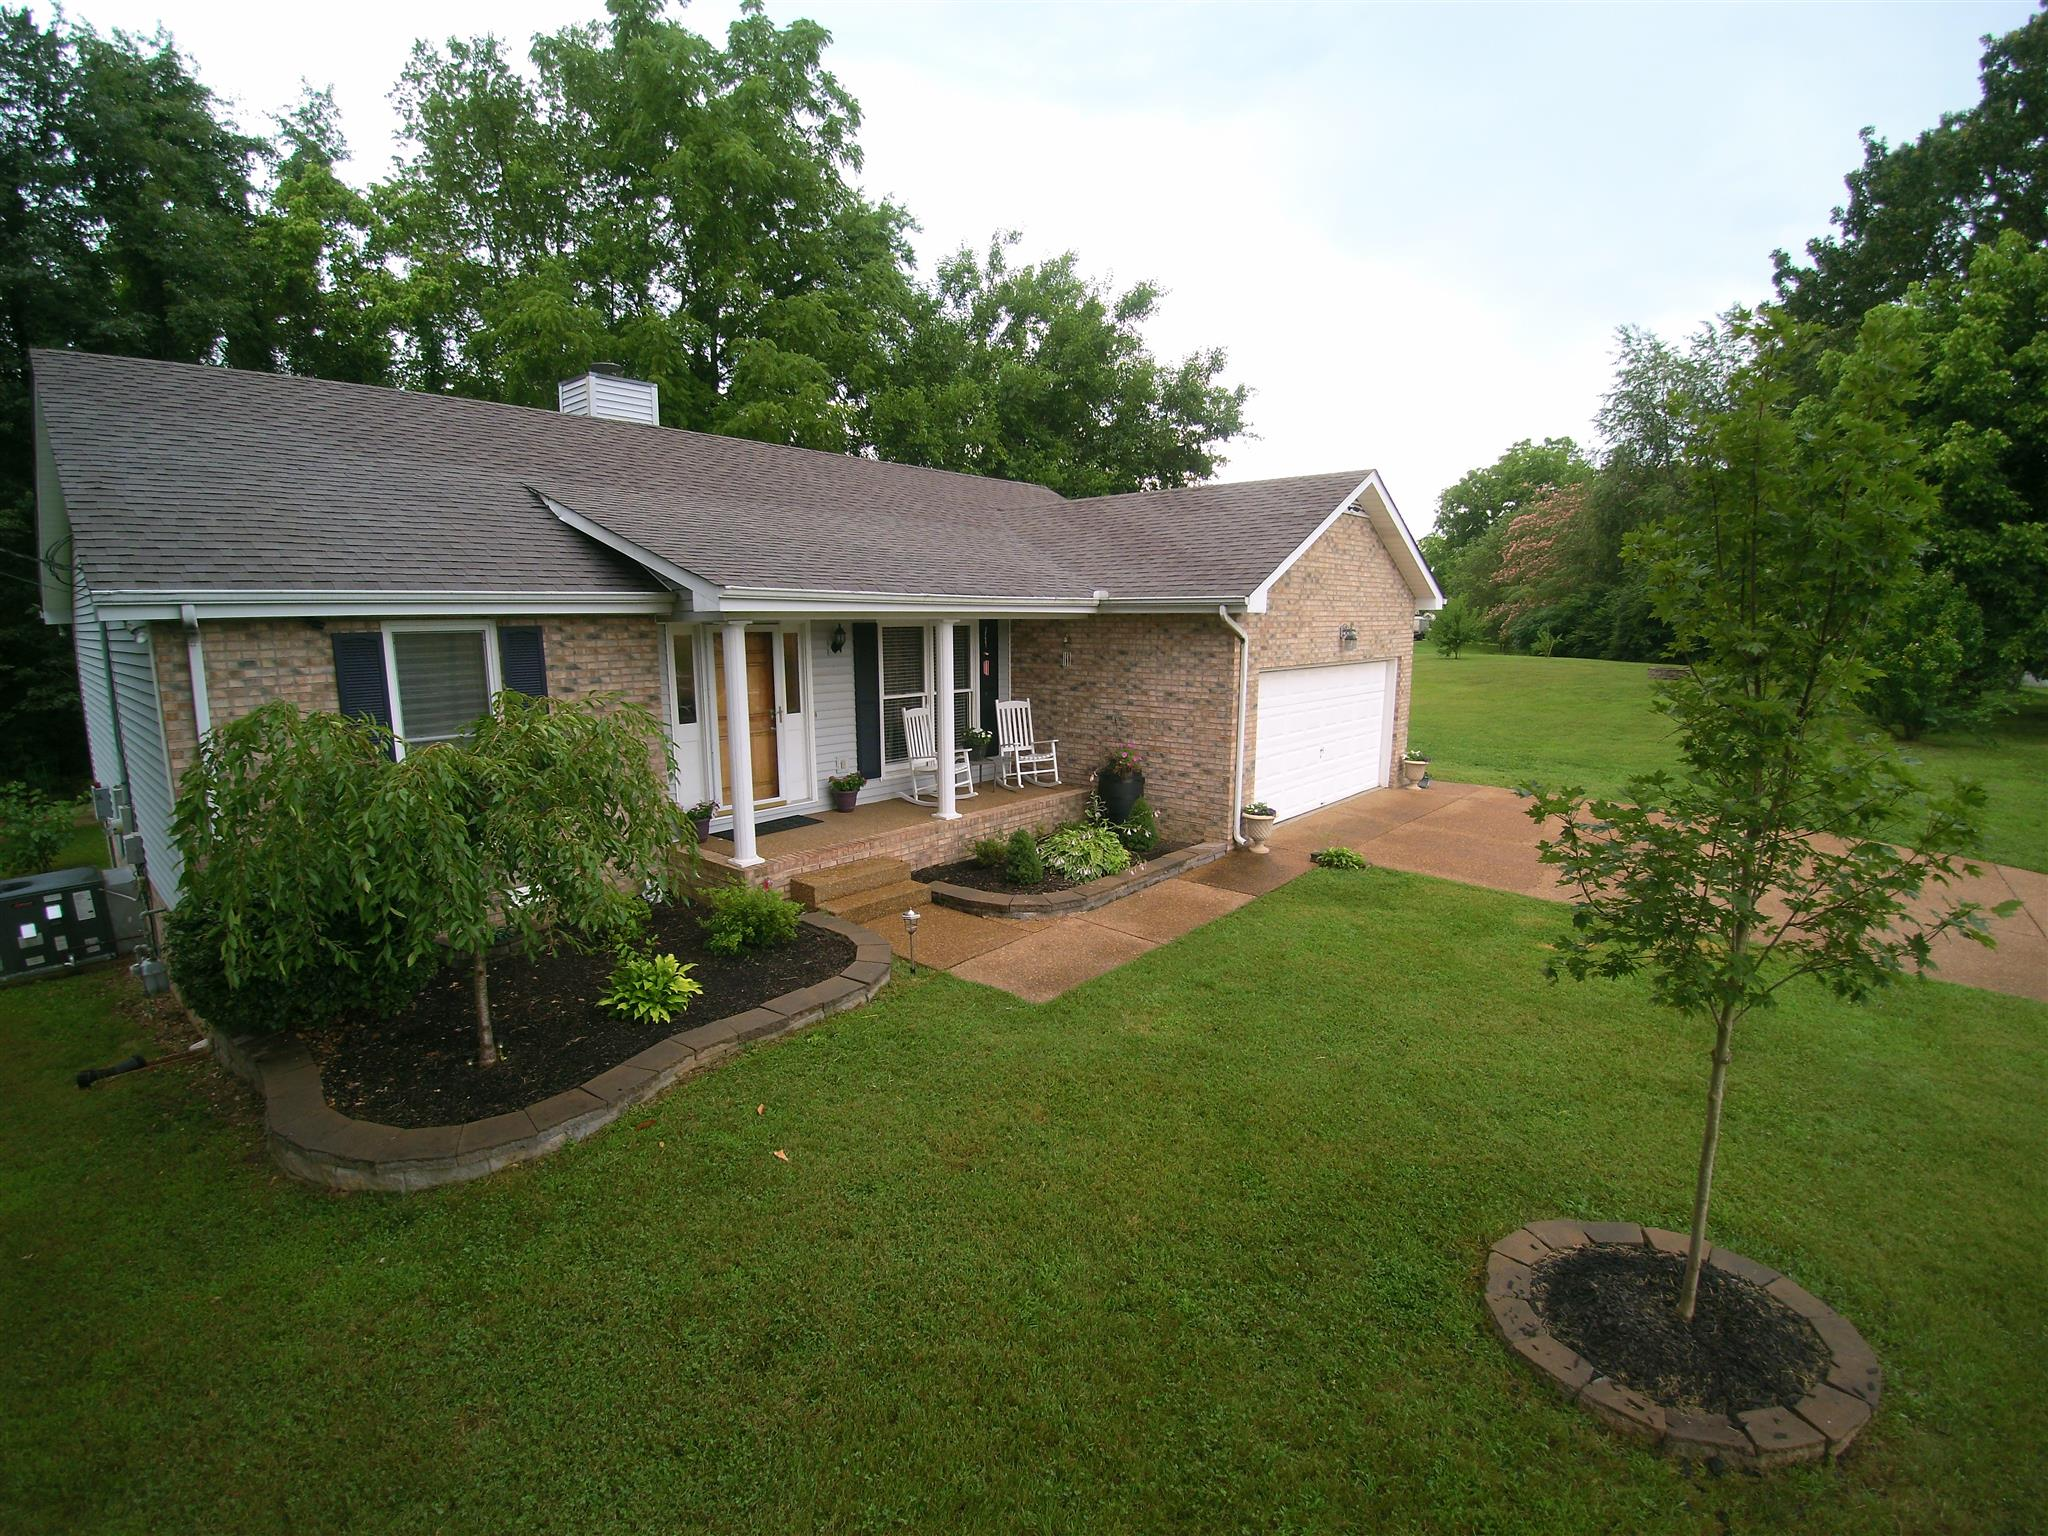 7103 Clearview Dr, Fairview in Williamson County County, TN 37062 Home for Sale